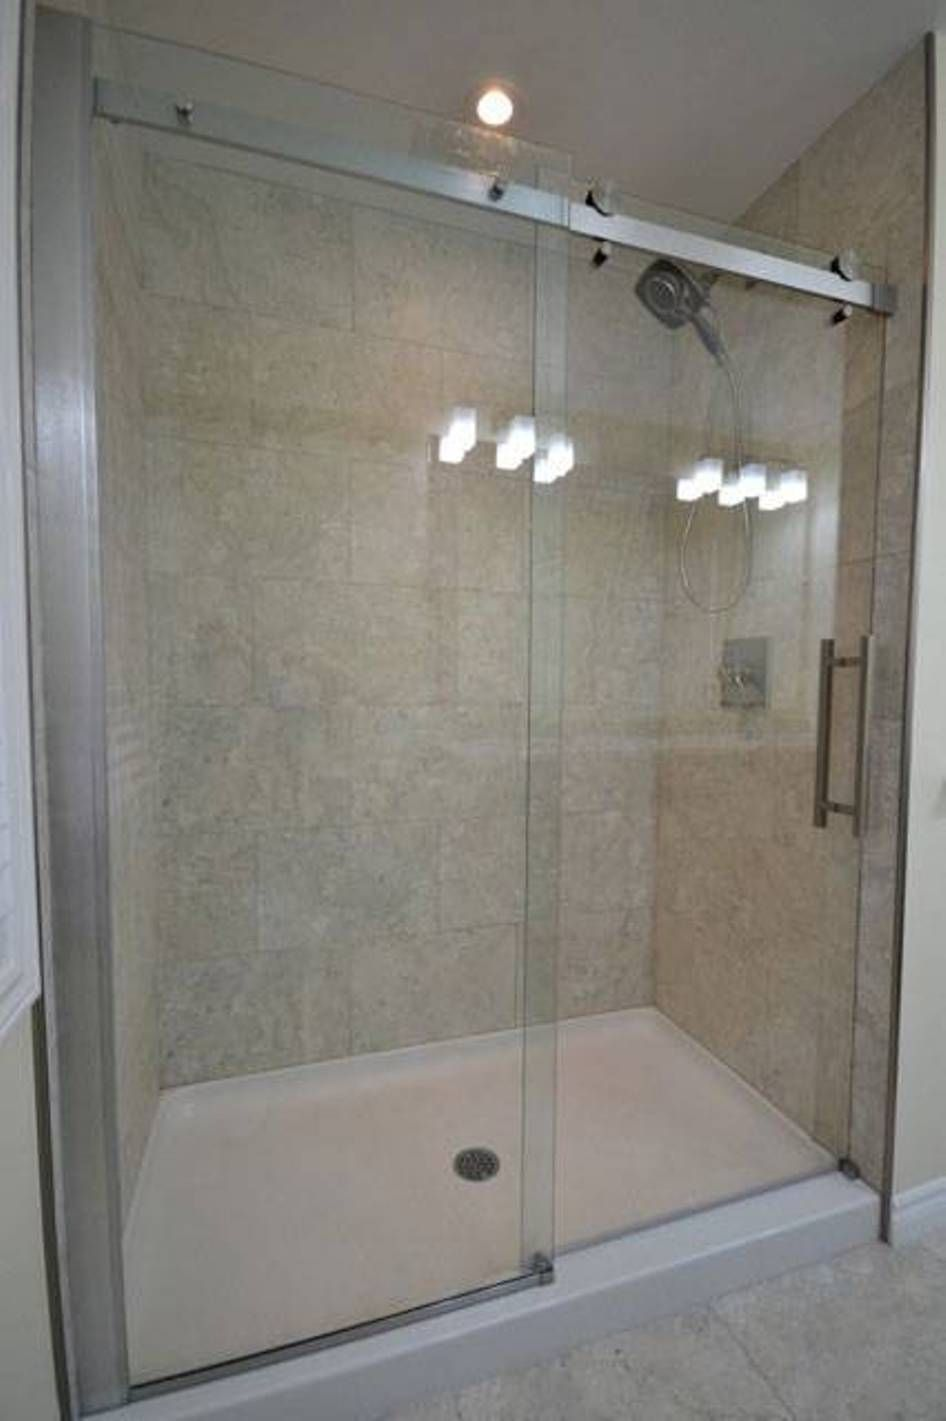 Shower Pan With Sliding Glass Door In Bathroom Bathroom Remodel Ideas Pinterest Shower Pan